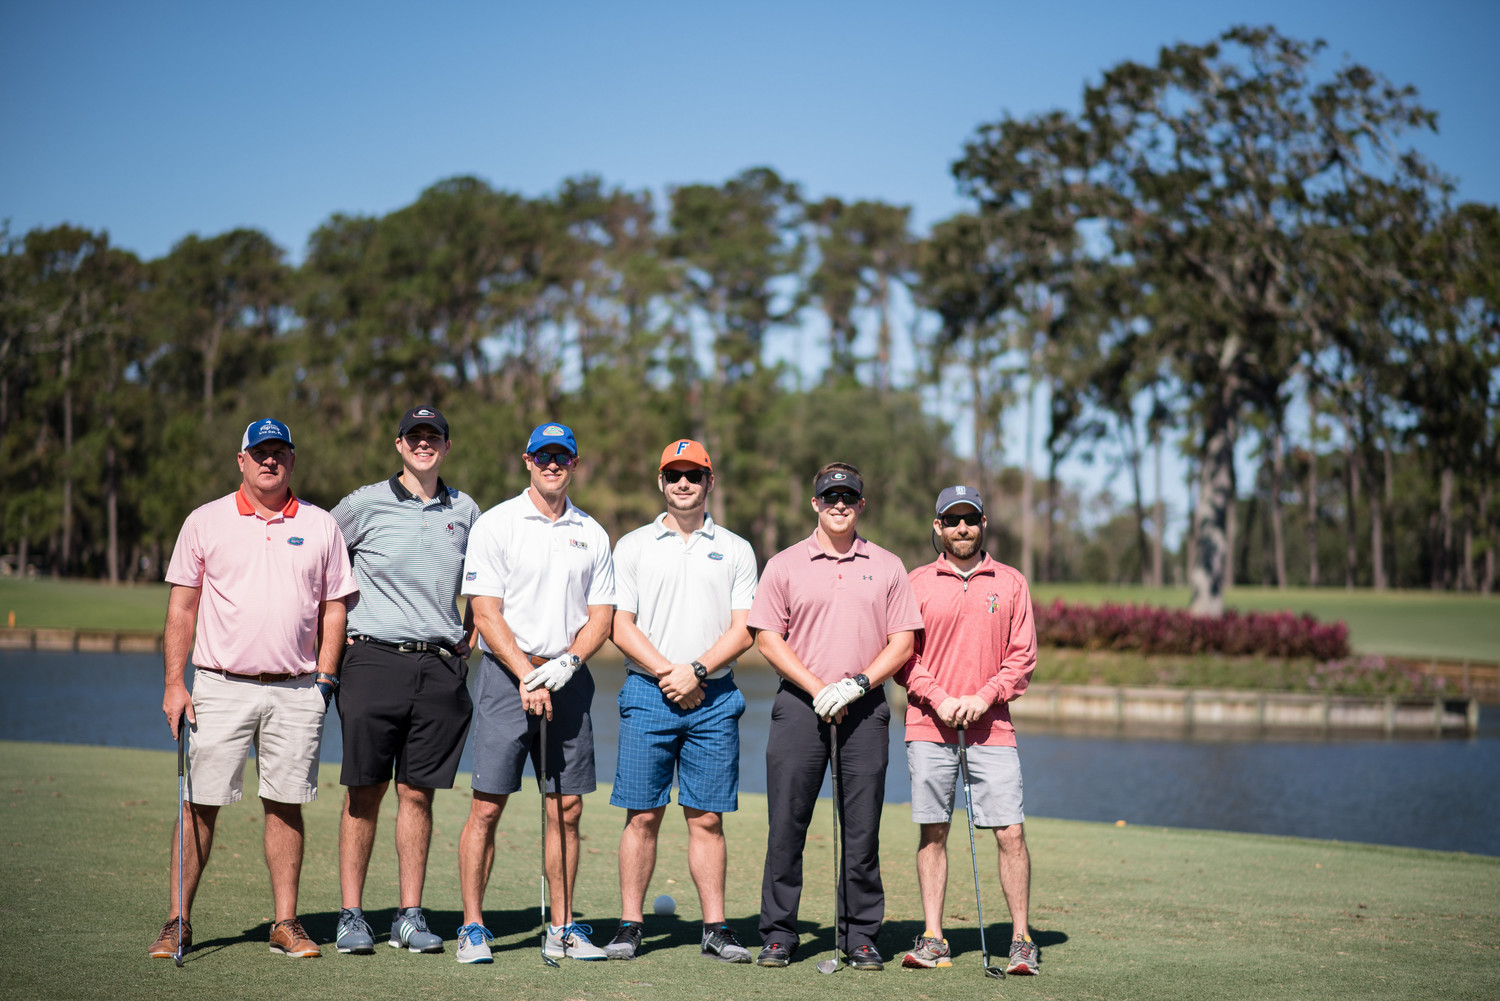 Danny Wuerffel (third from left) gathers with his foursome from Just BARE Chicken (event sponsor) and his nephew Zach.